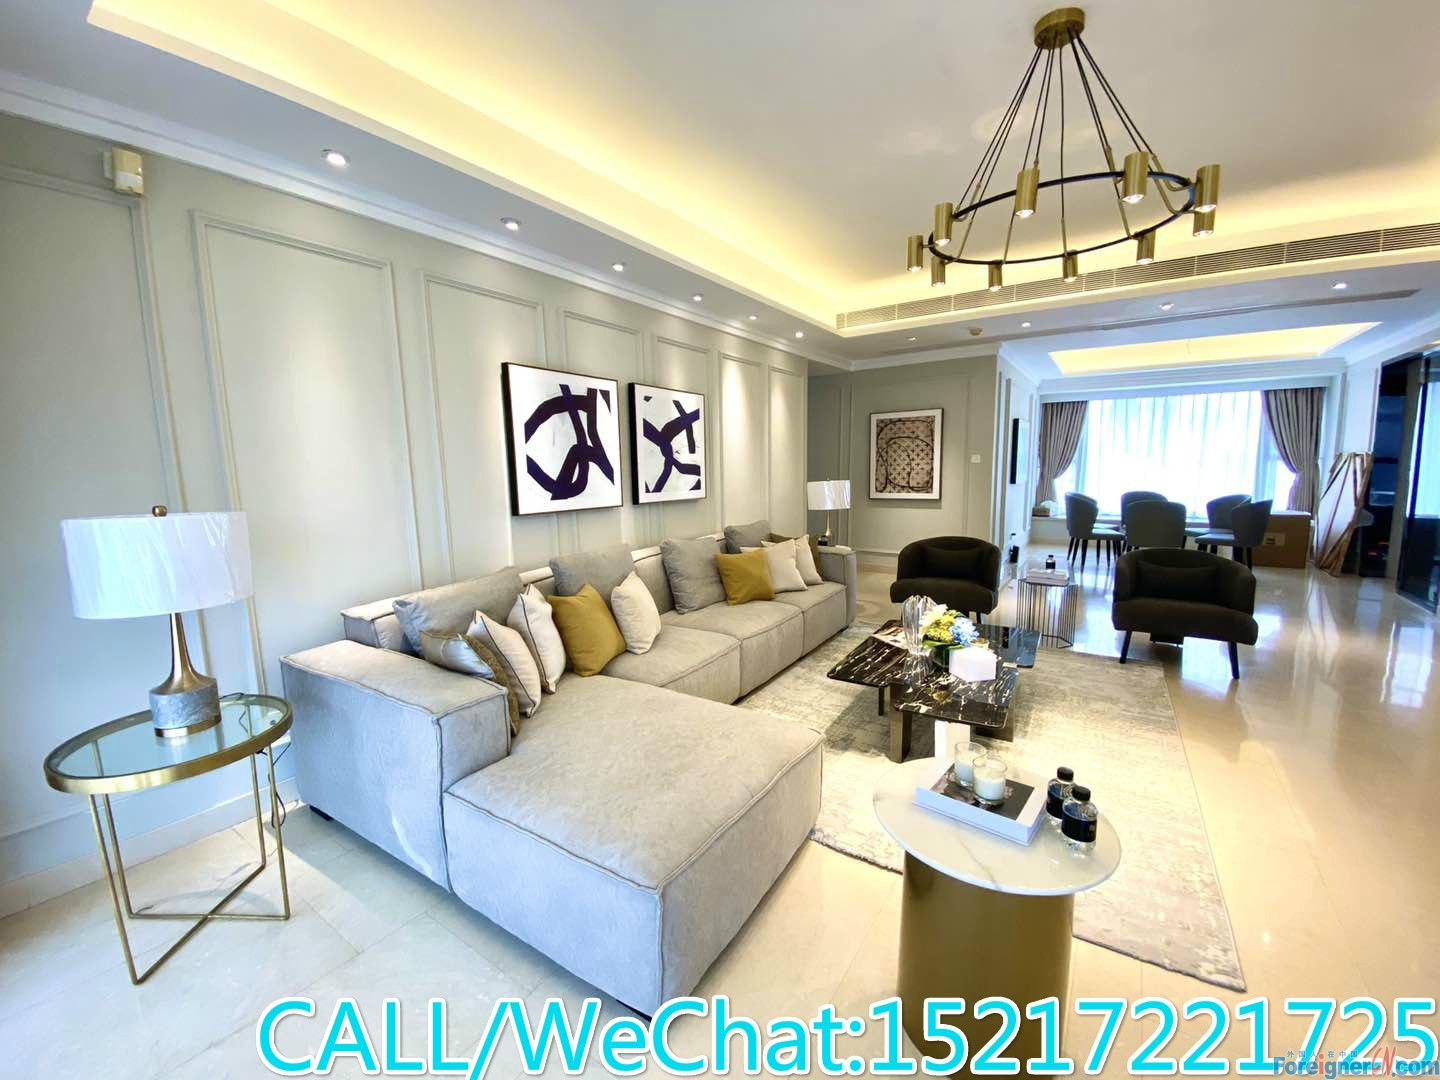 Luxurious decoration 4brs avaliable now,huge living room,good condition,City center.